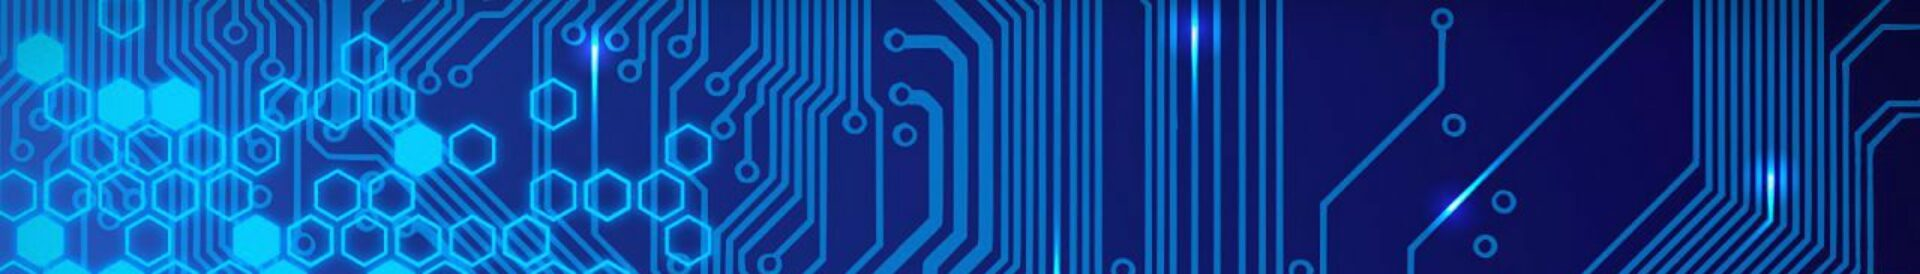 https://blog.romwnet.org/blog/wp-content/uploads/2020/12/cropped-circuit-board-design-blue-abstract-web-header-2.jpg